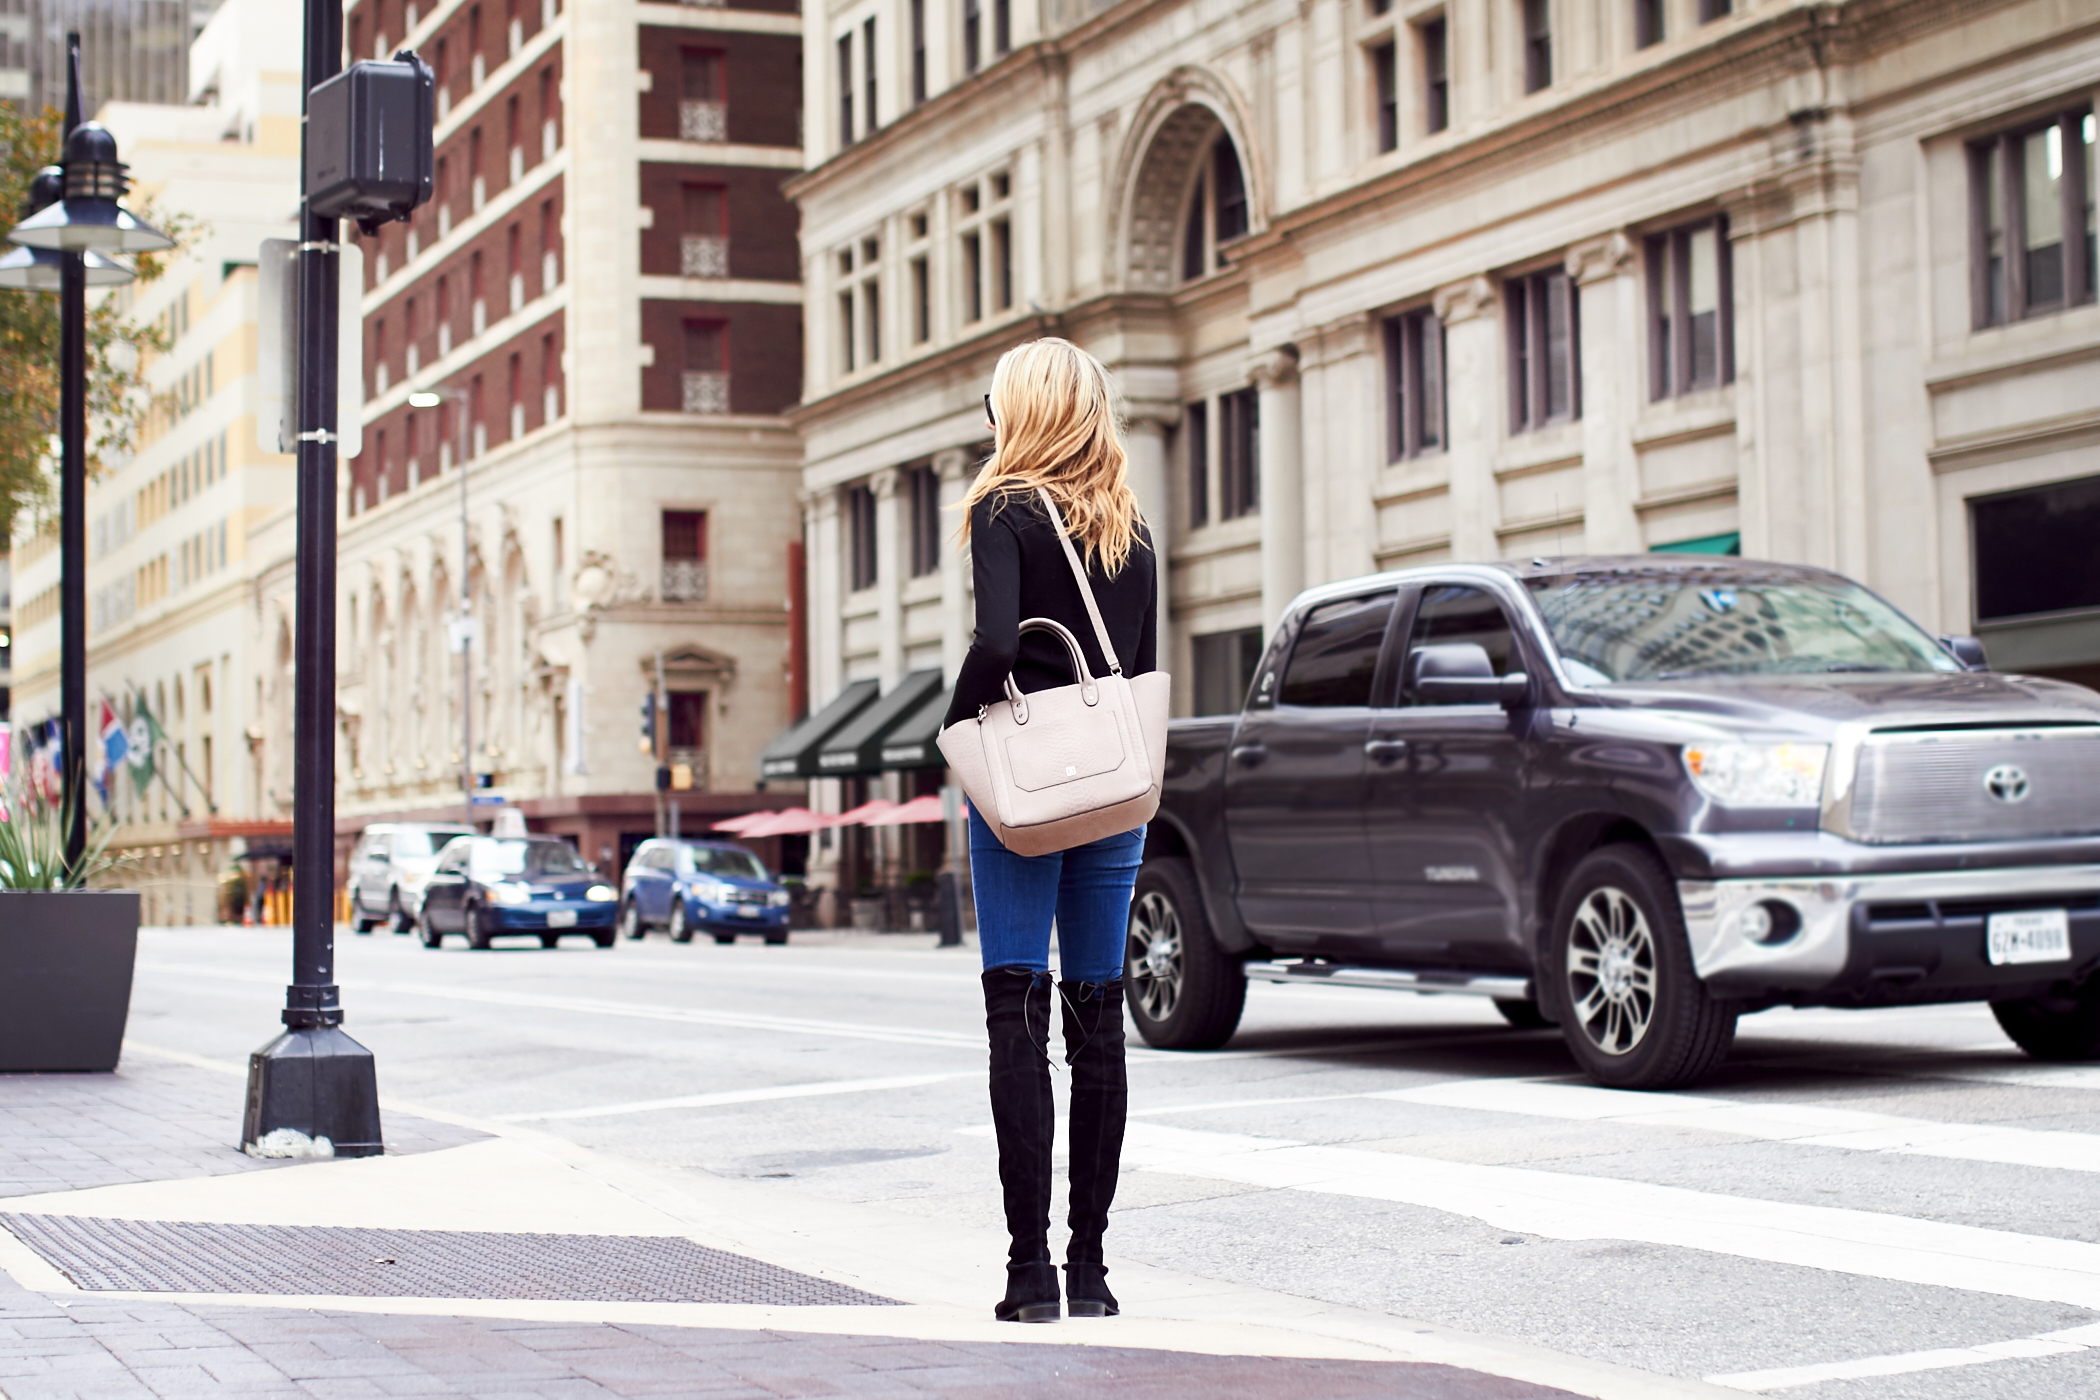 fashion-jackson-ivanka-trump-tribeca-embossed-leather-tote-pale-taupe-black-sweater-denim-skinny-jeans-black-over-the-knee-boots